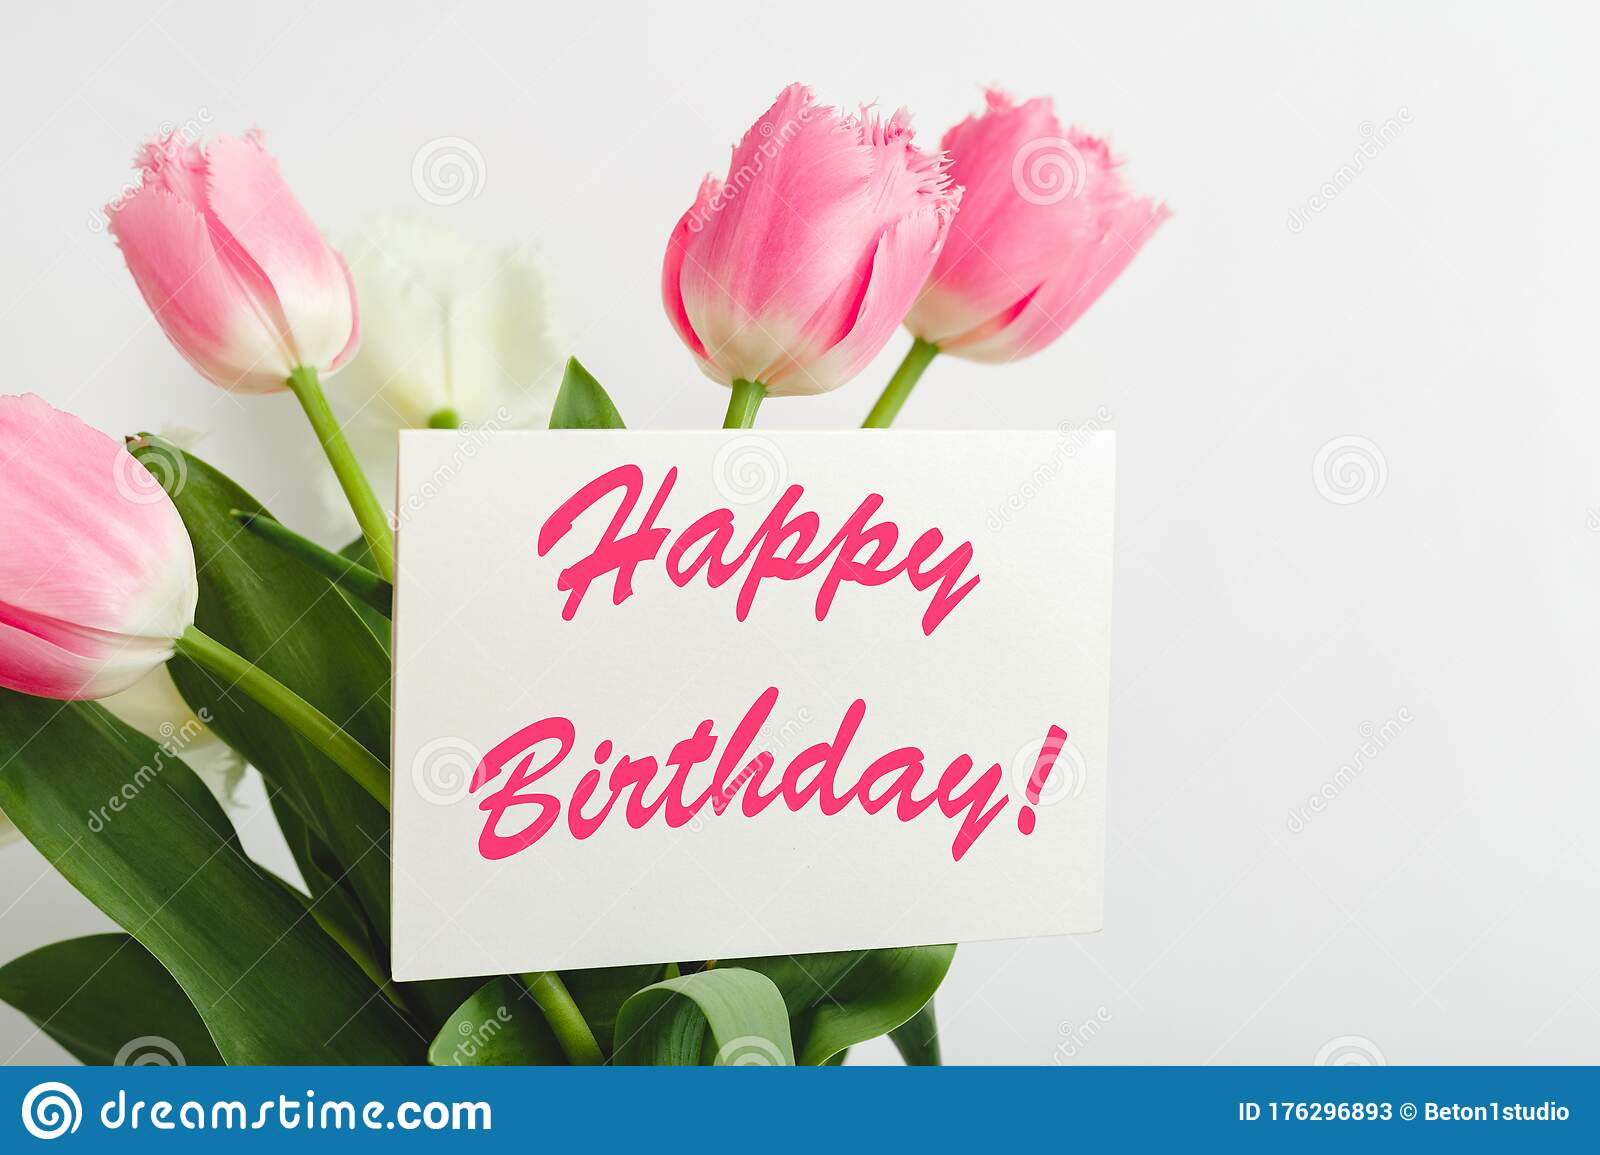 46 883 Happy Birthday Flowers Photos Free Royalty Free Stock Photos From Dreamstime